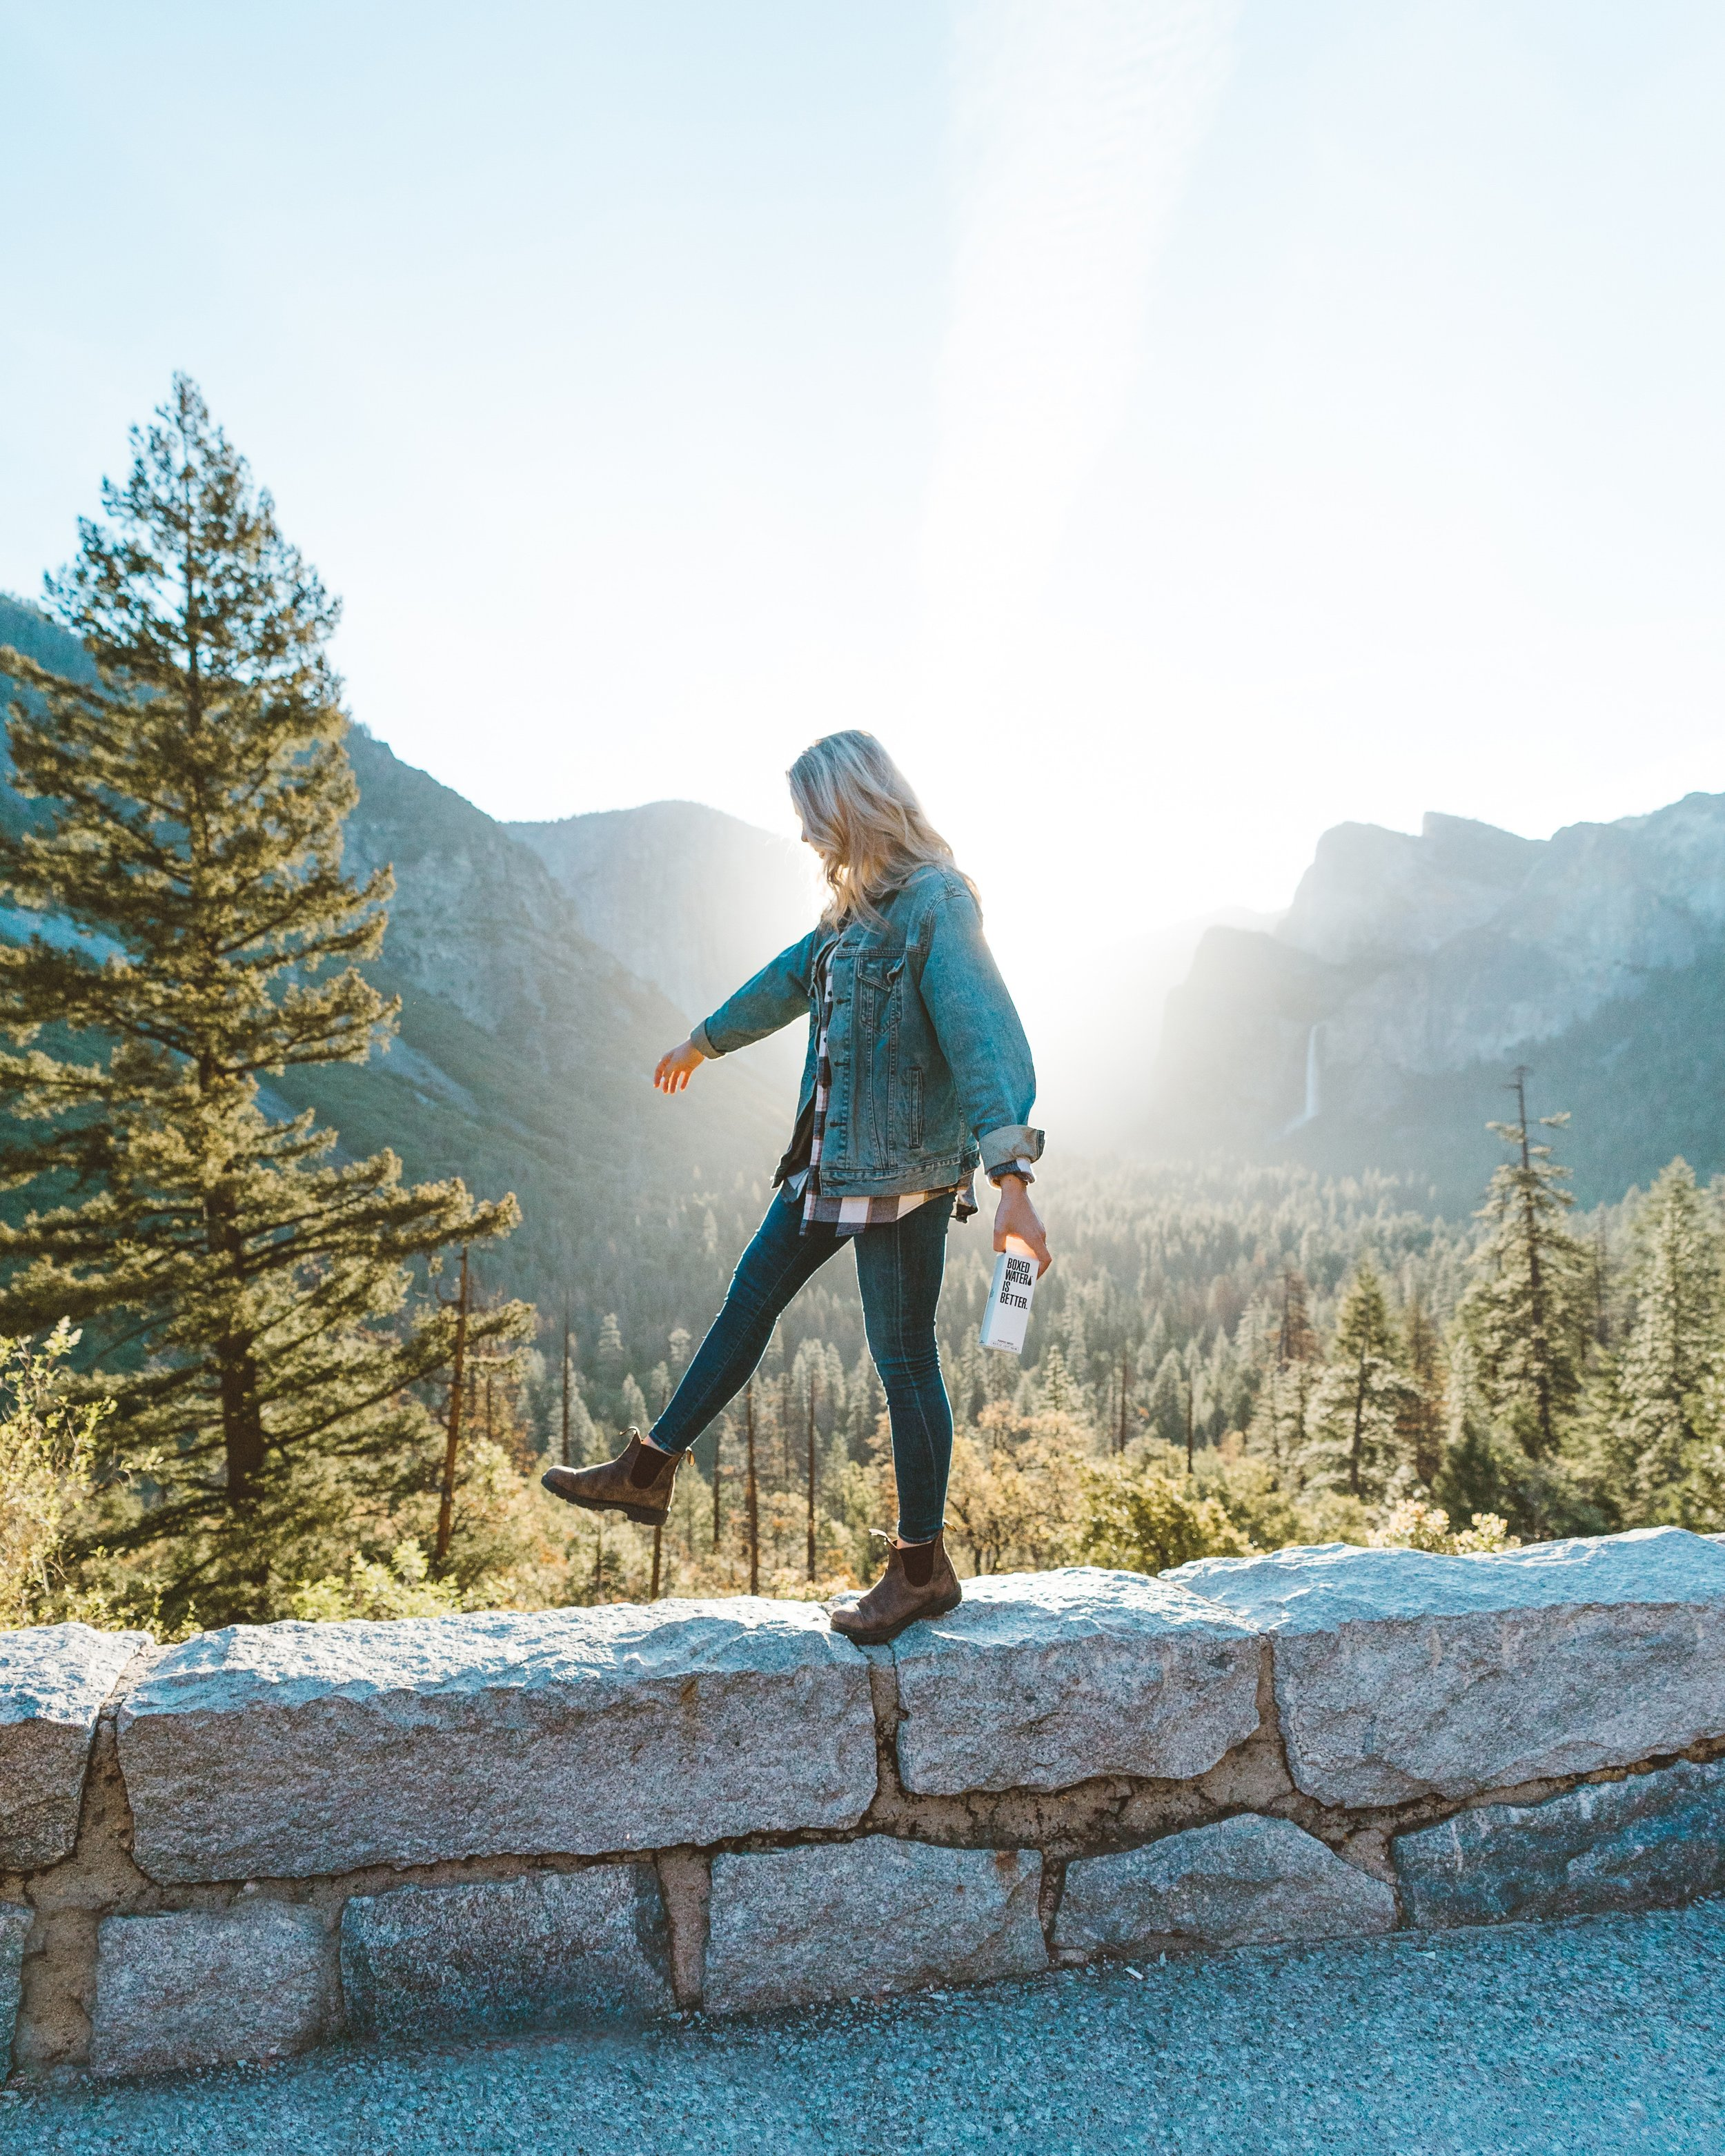 Private Guided Hiking Tour in Yosemite - Walk to soaring cliffs and alpine meadows on a private, guided hiking tour of Yosemite National Park. Tailor this 5- or 6-hour trip to your interests and ability, then find your perfect trail into the wilderness.